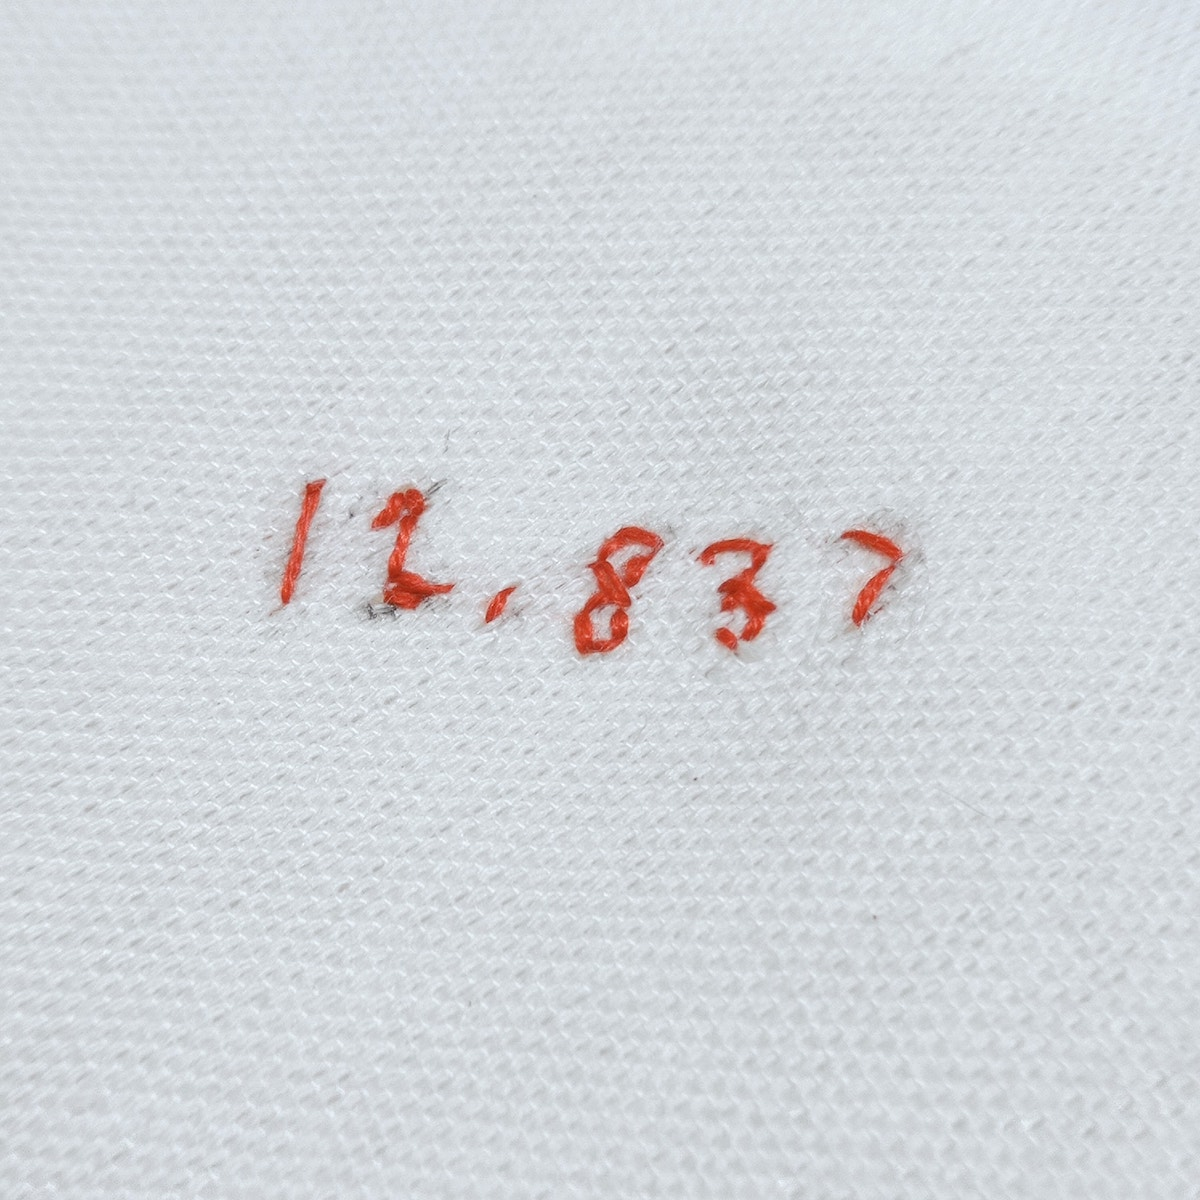 For this Samar-born artist, embroidery is protest 6